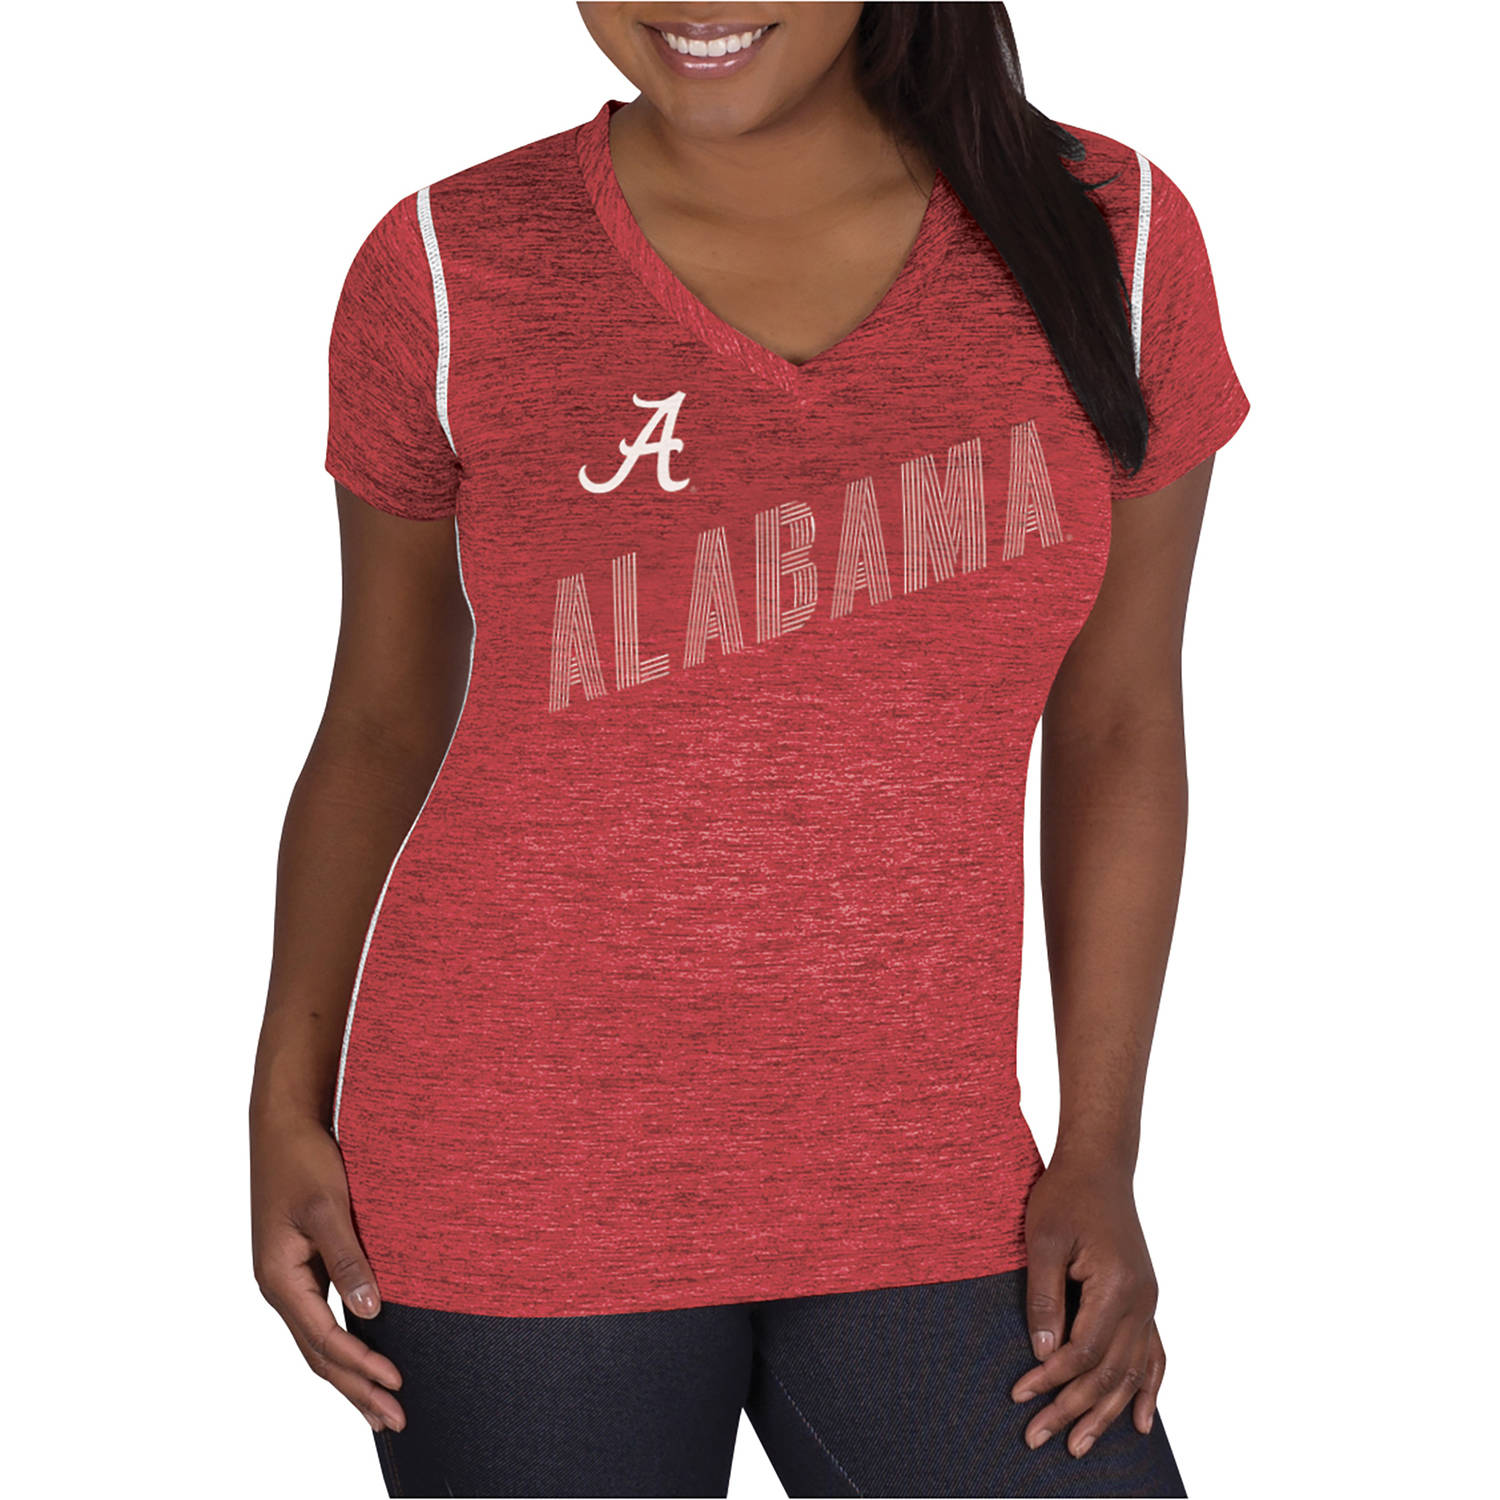 NCAA Alabama Crimson Tide Ladies Classic-Fit Synthetic V-Neck Tee